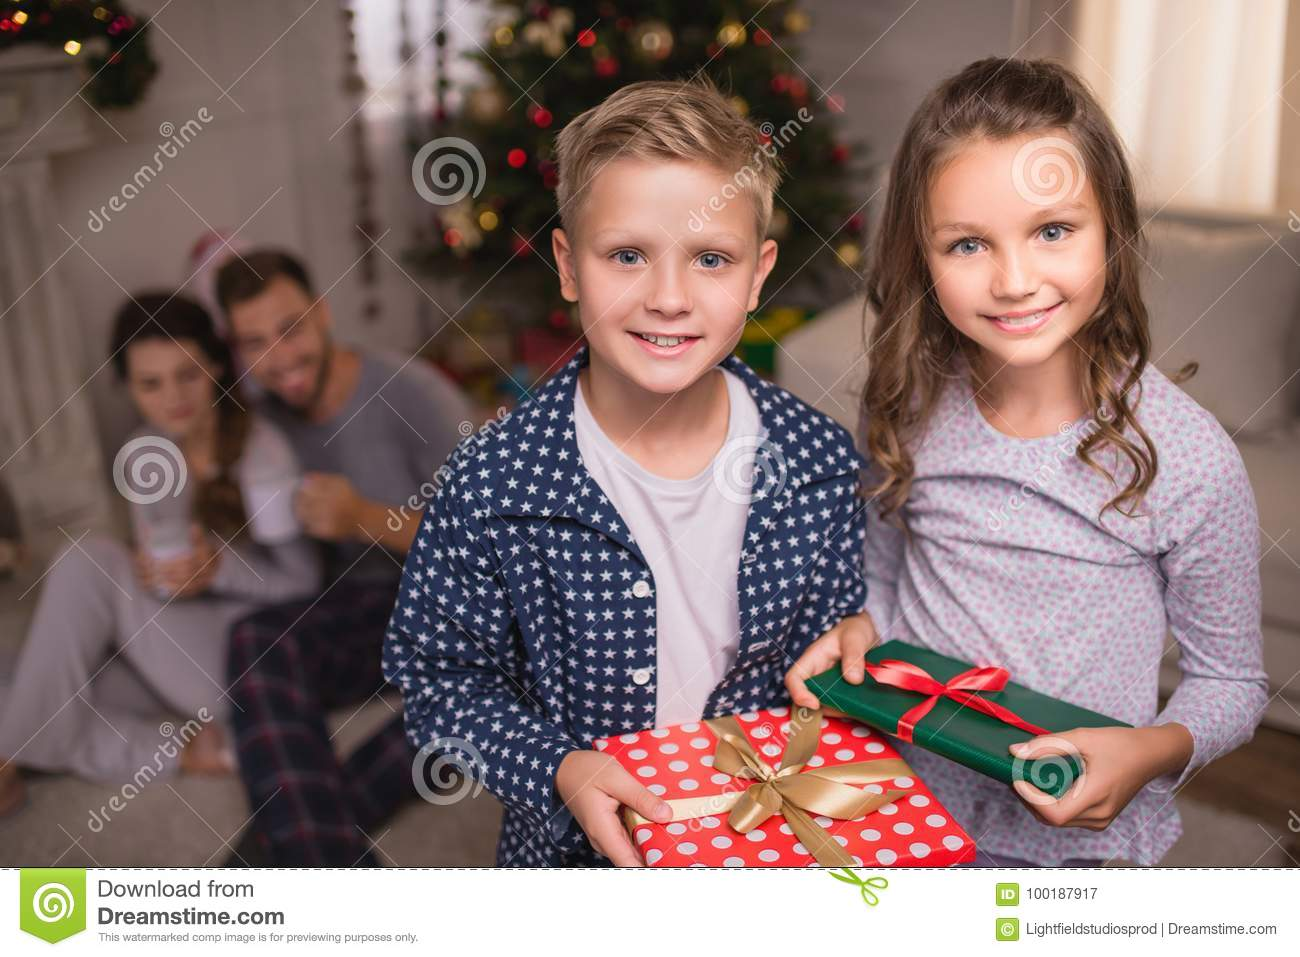 Smiling Children With Christmas Gifts Stock Image - Image of xmas ...